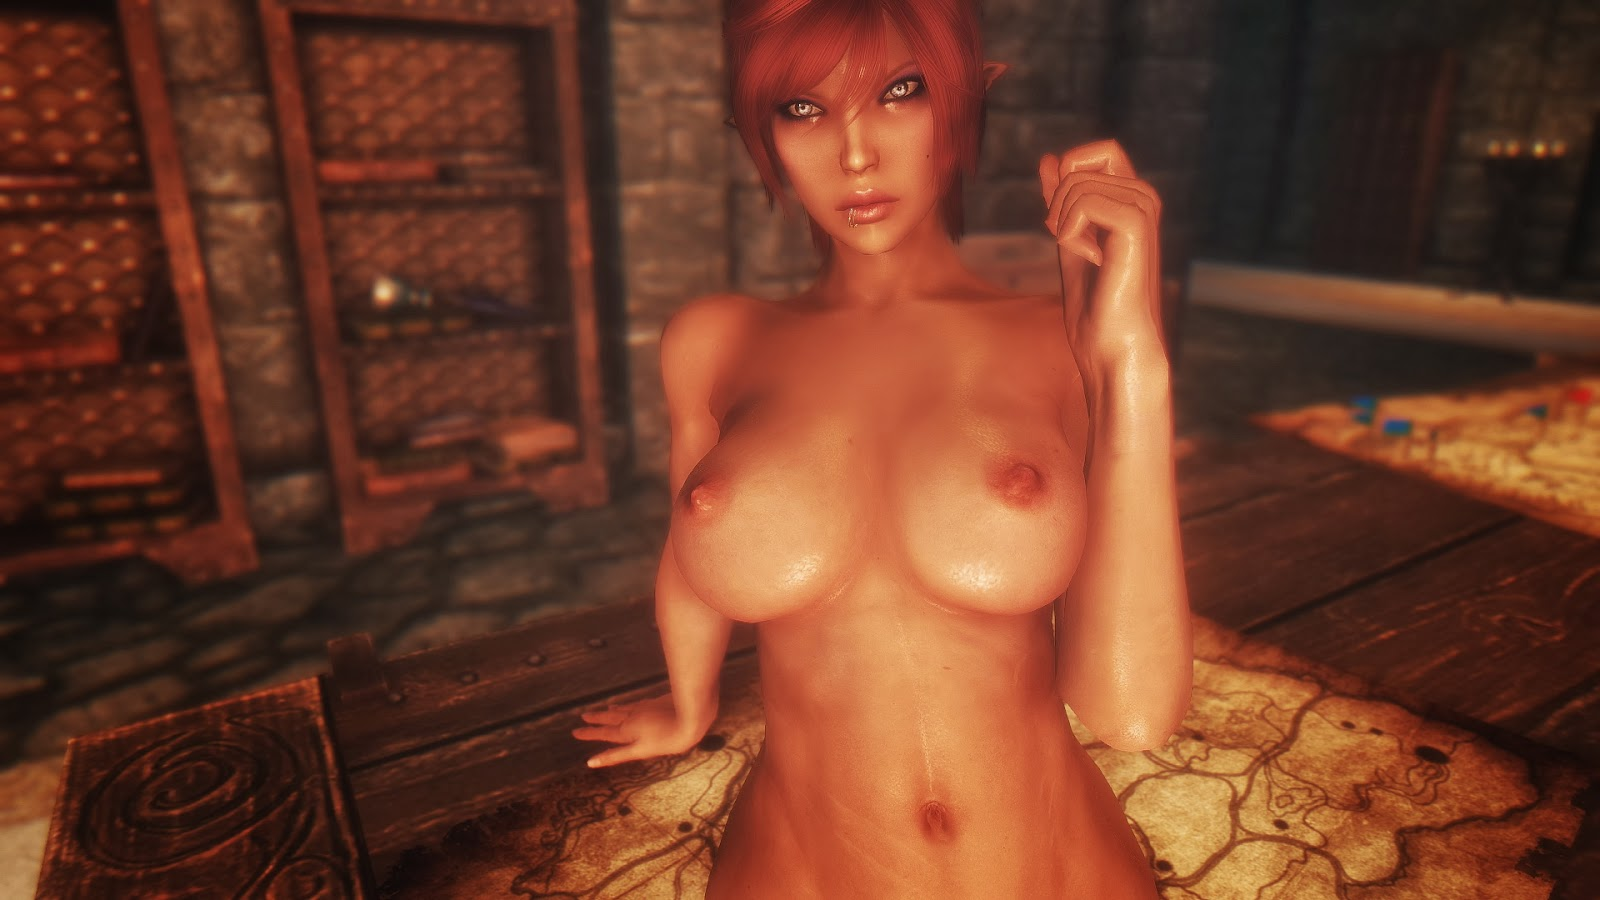 Skyrim naked girls porncraft download